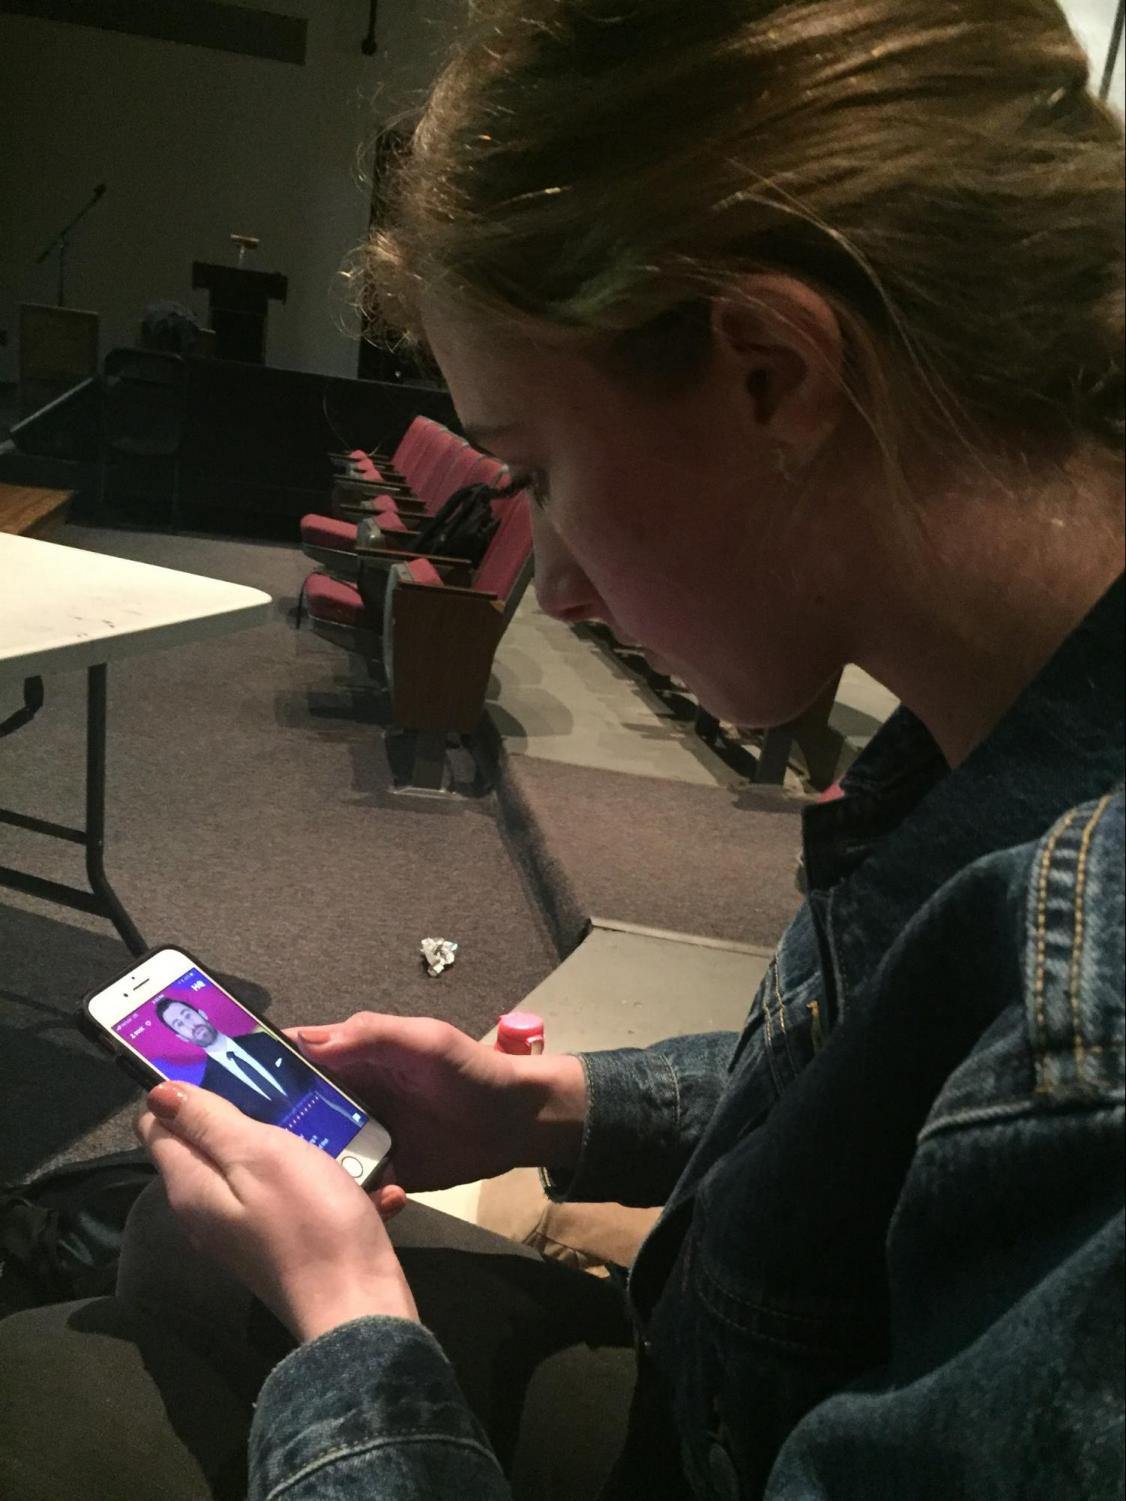 Junior Olivia Hunter pulls her phone out to play 'HQ' in the Vincent Murray Auditorium on Thursday, Jan 25, 2018. Hunter looks anxiously at the phone as Scott